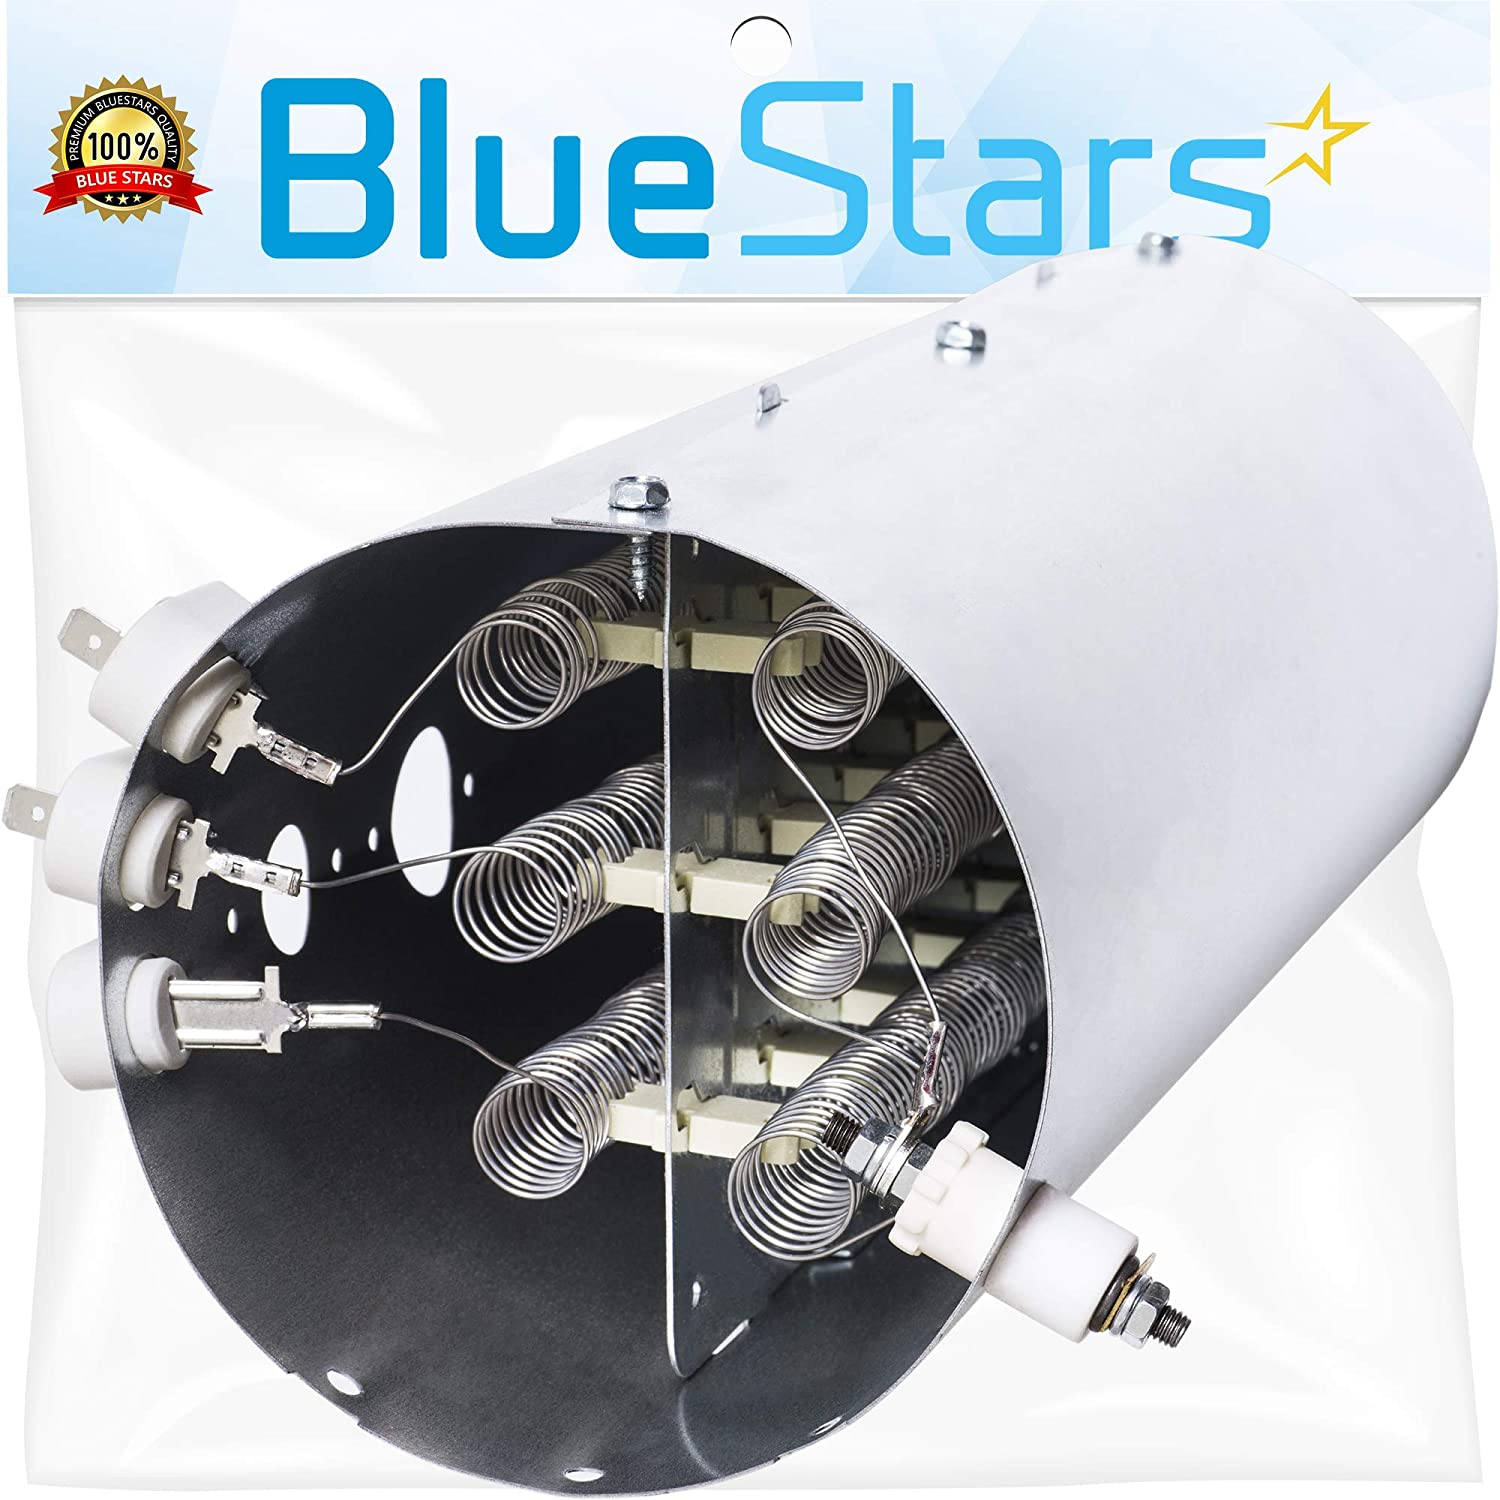 134792700 Dryer Heating Element Replacement Part by Blue Stars - Exact Fit For Electrolux Frigidaire Dryers - Replaces PS2349309 AP4368653 1482984 AH2349309 AP4456656 EA2349309